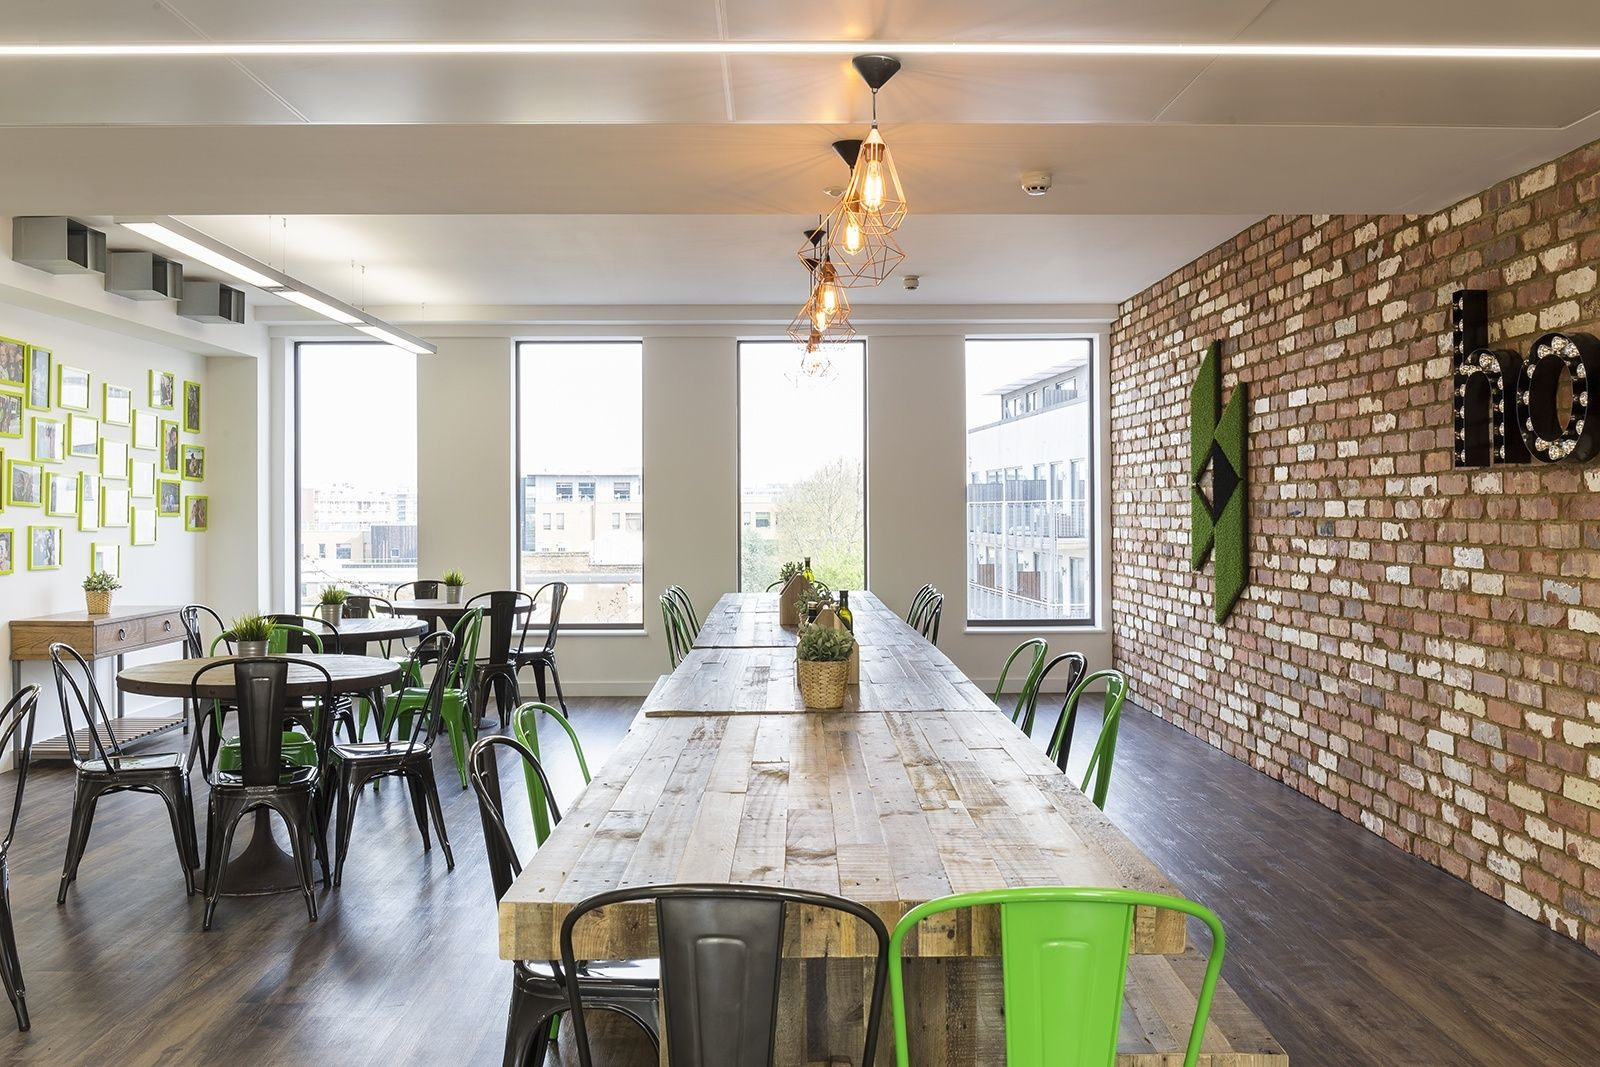 A tour of houzz s new european headquarters office break for Houzz interior design ideas